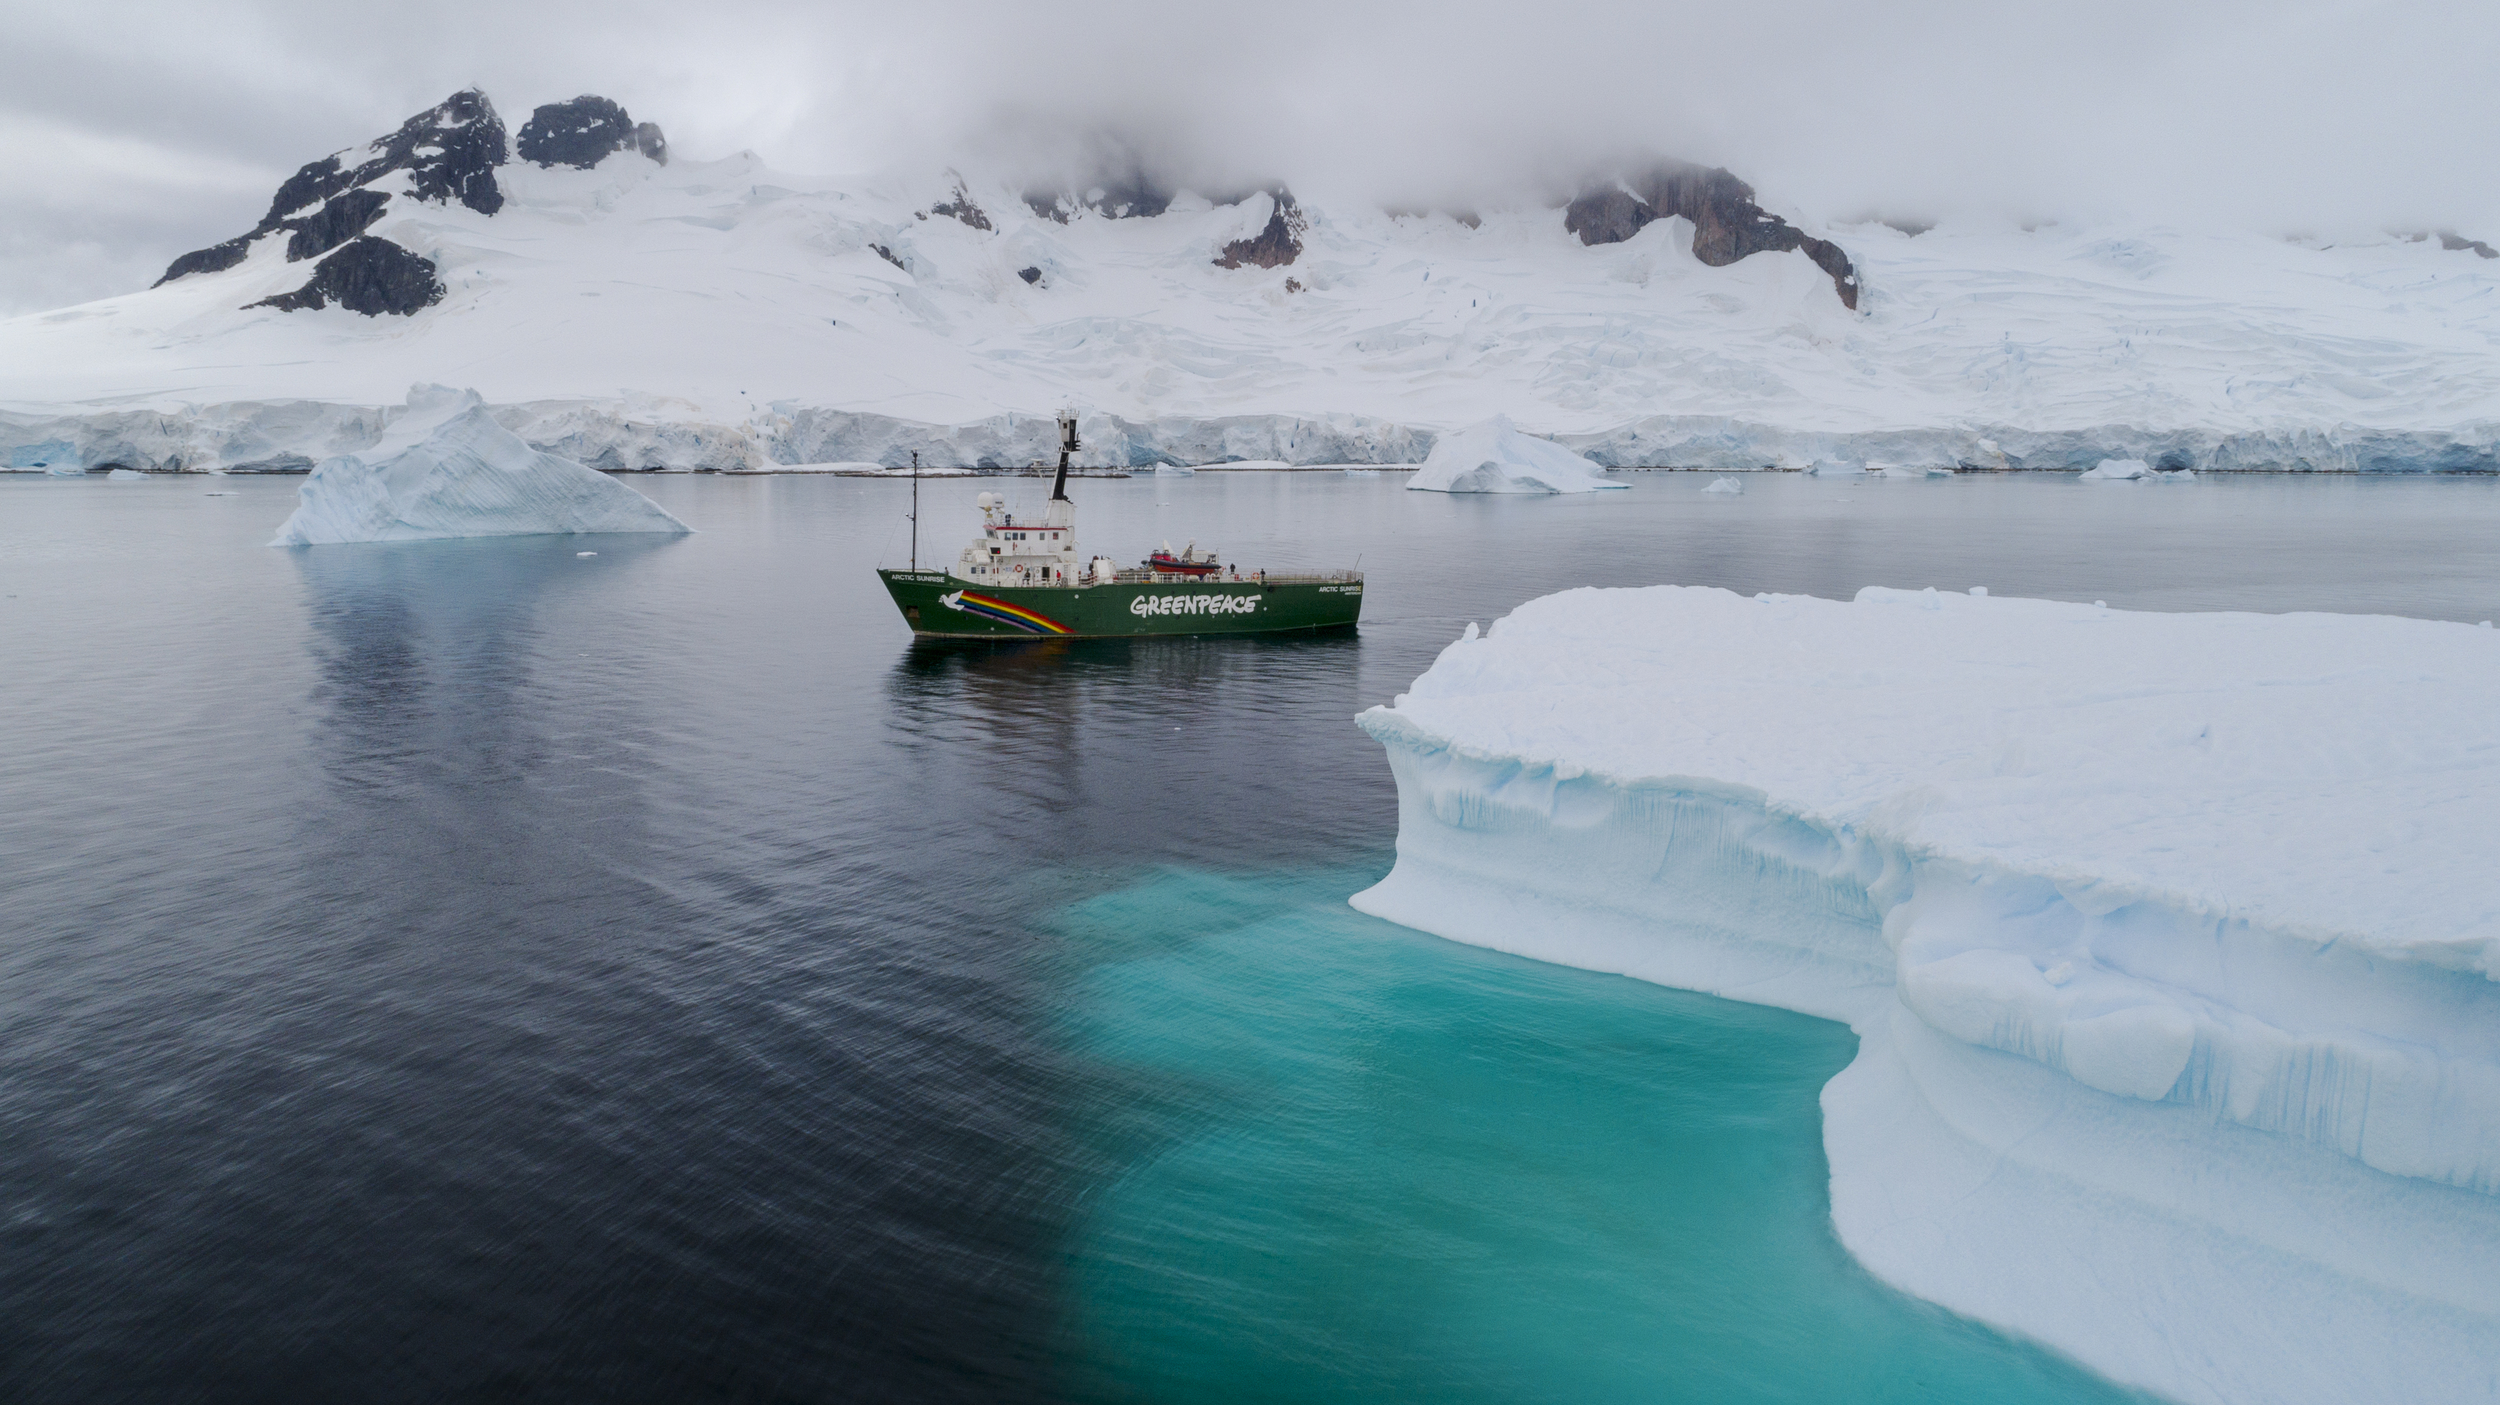 greenpeace ship next to ice in water